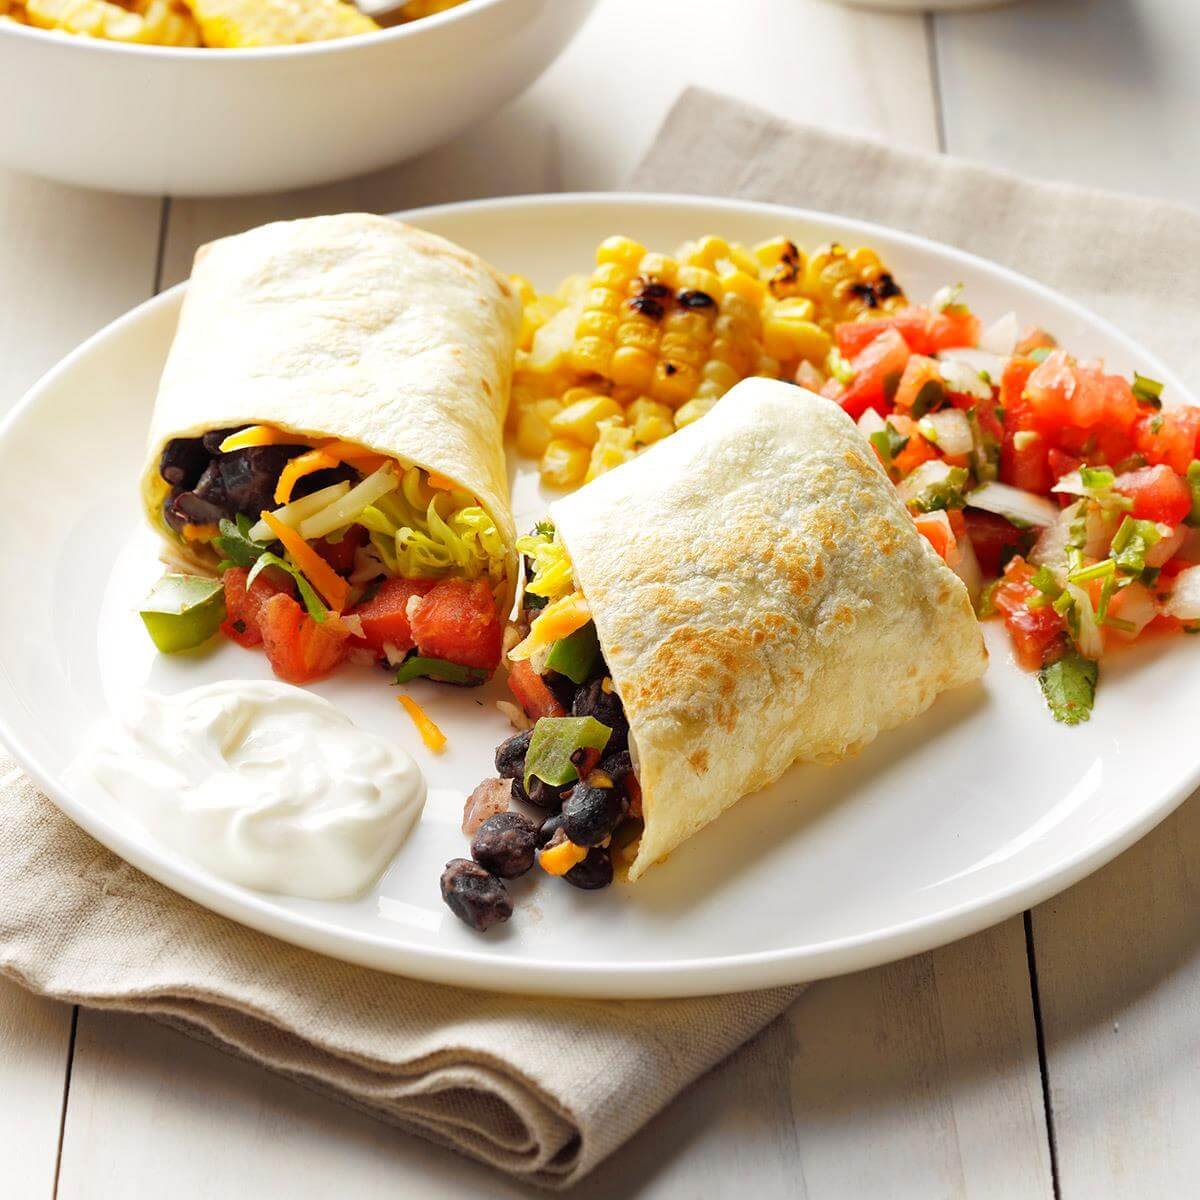 BLACK BEAN BURRITO  The combination of Southwestern ingredients and Eastern seasonings add a unique flavor to this burrito. Enjoy!  Head on to our Instagram @ahealthyview to get the full recipe  #keepinghealthy #kitchenrecipes #EatDrinkAndStillShrink #foodislove